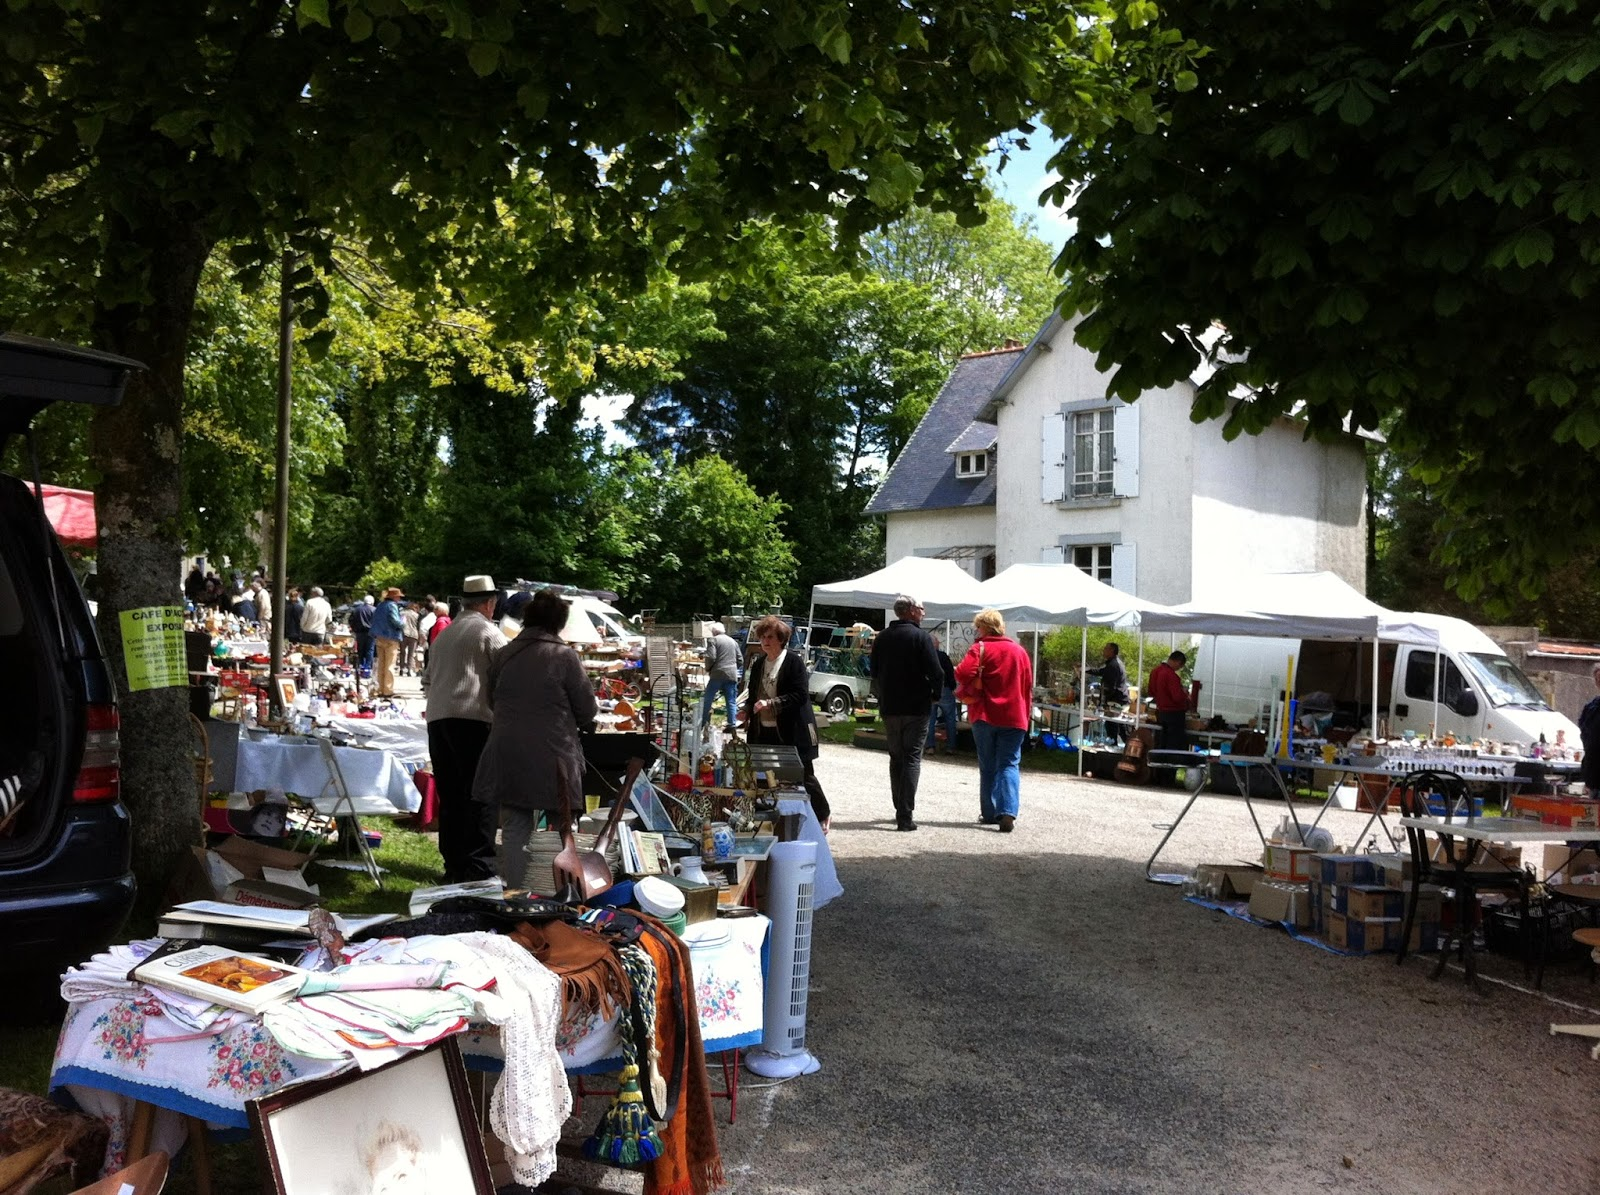 Le feuillee, Brittany, car boot sale, Huelgoat B&B